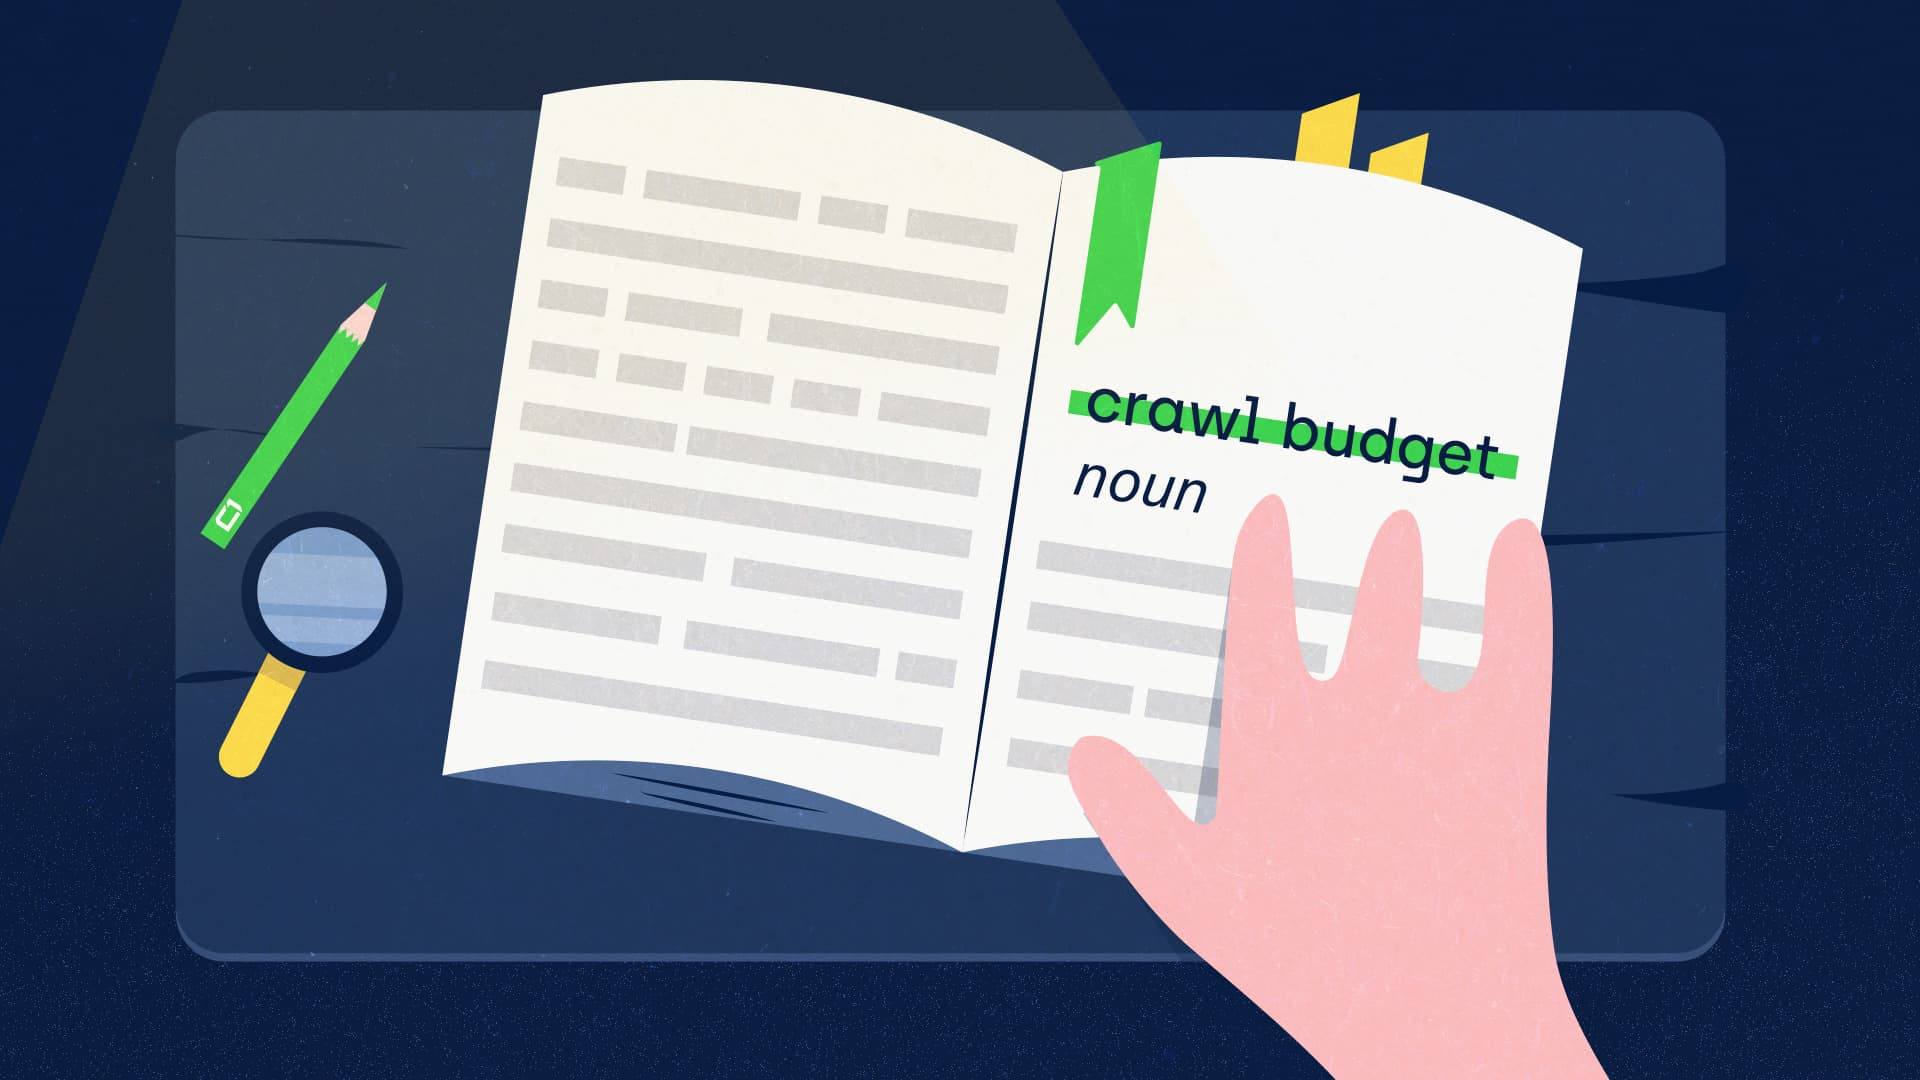 We Need to Redefine the Crawl Budget